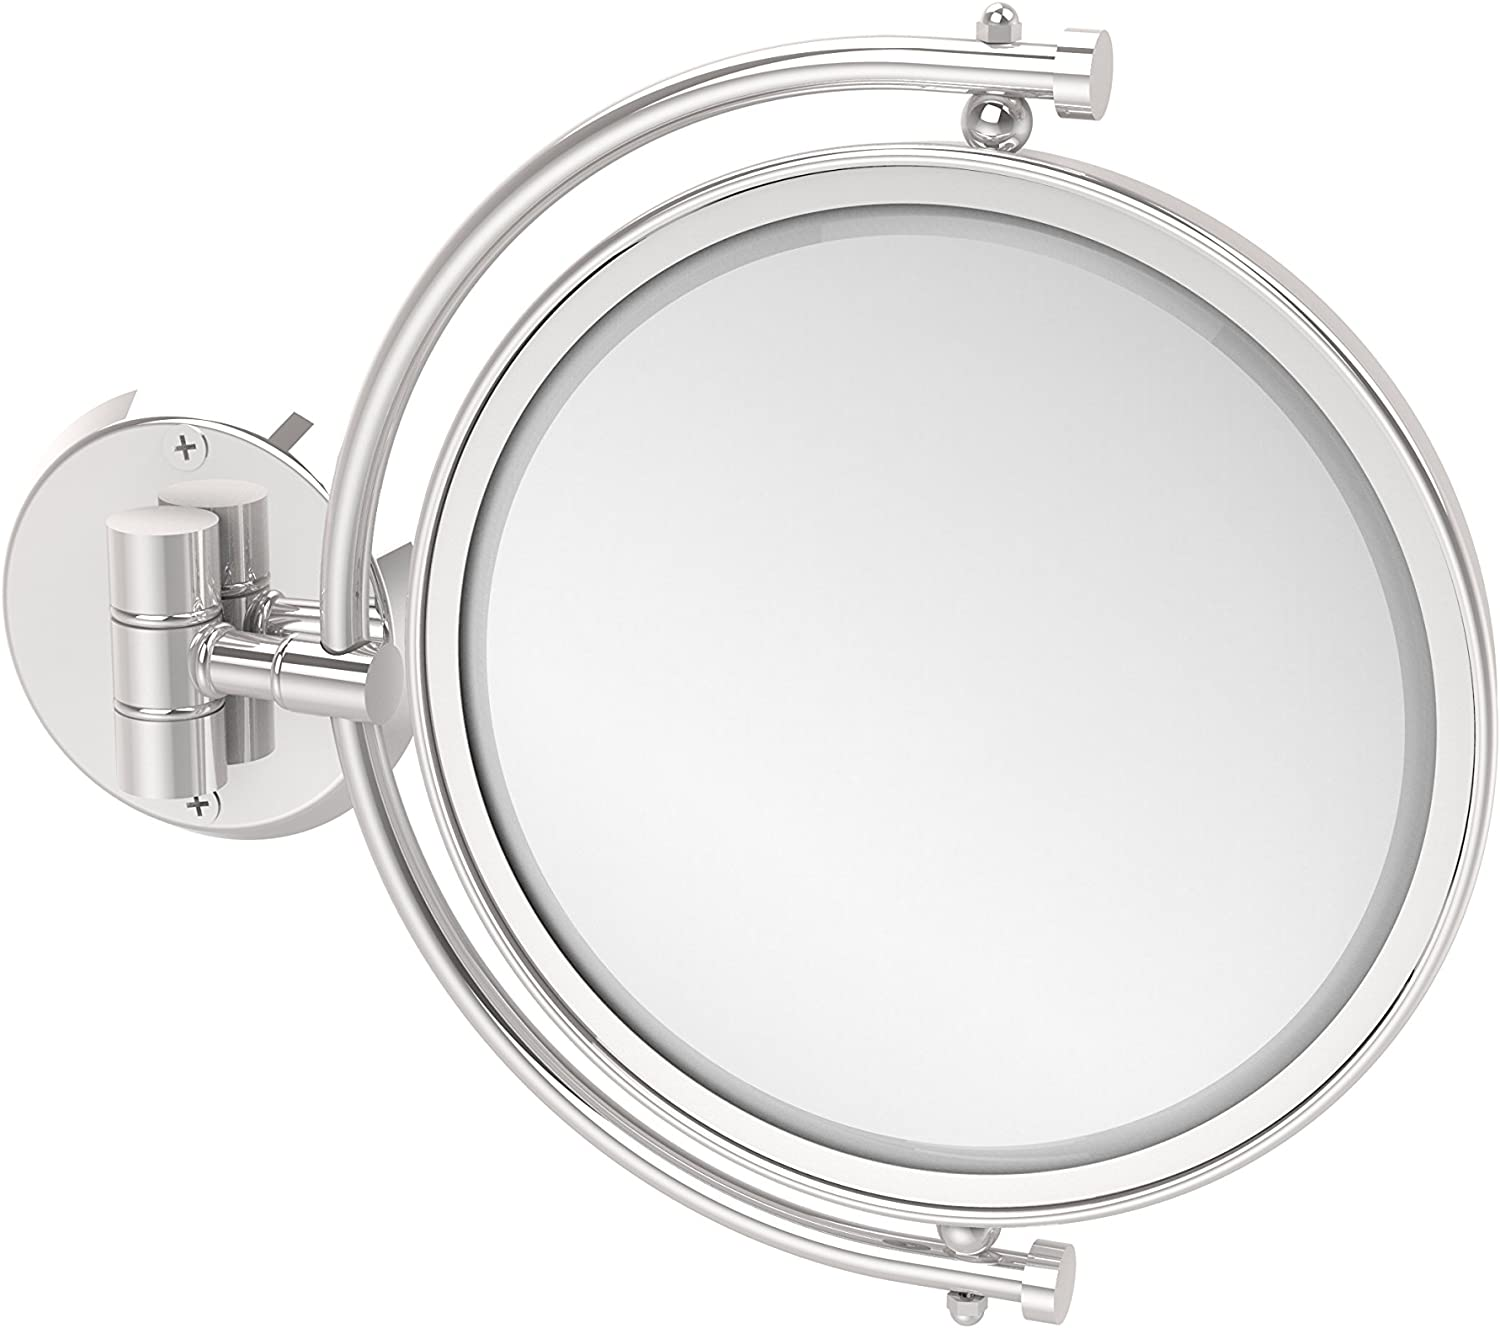 Allied Brass WM-4 5X-PC 8-Inch Mirror with 5X Magnification Extends 7-Inch, Polished Chrome